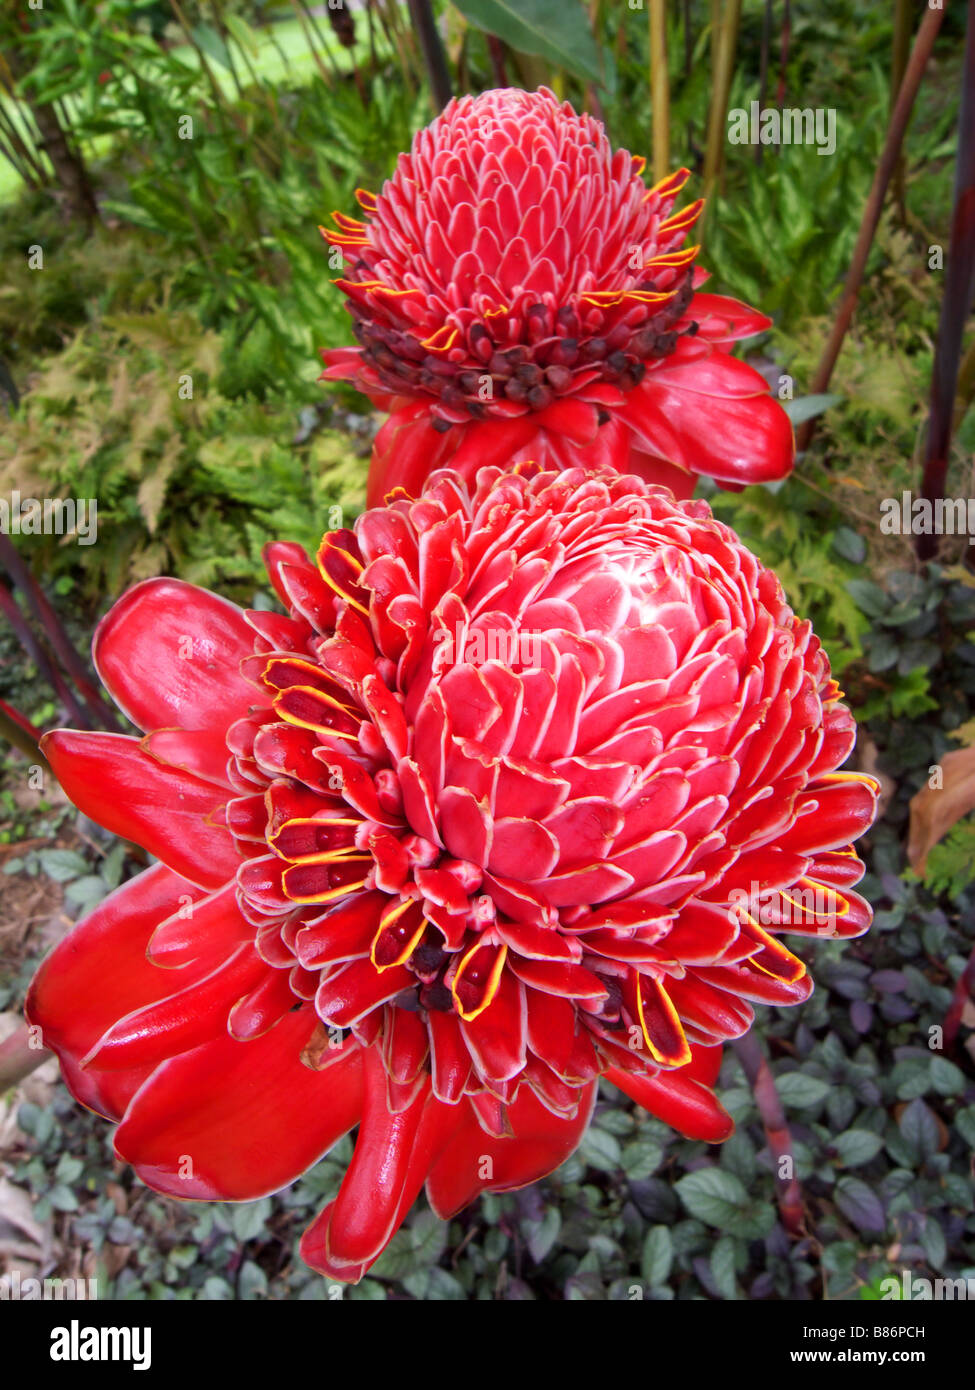 Spectacular flowers of the red torch ginger Etlingera elatior native to rainforests of Indonesia and New Guinea Stock Photo